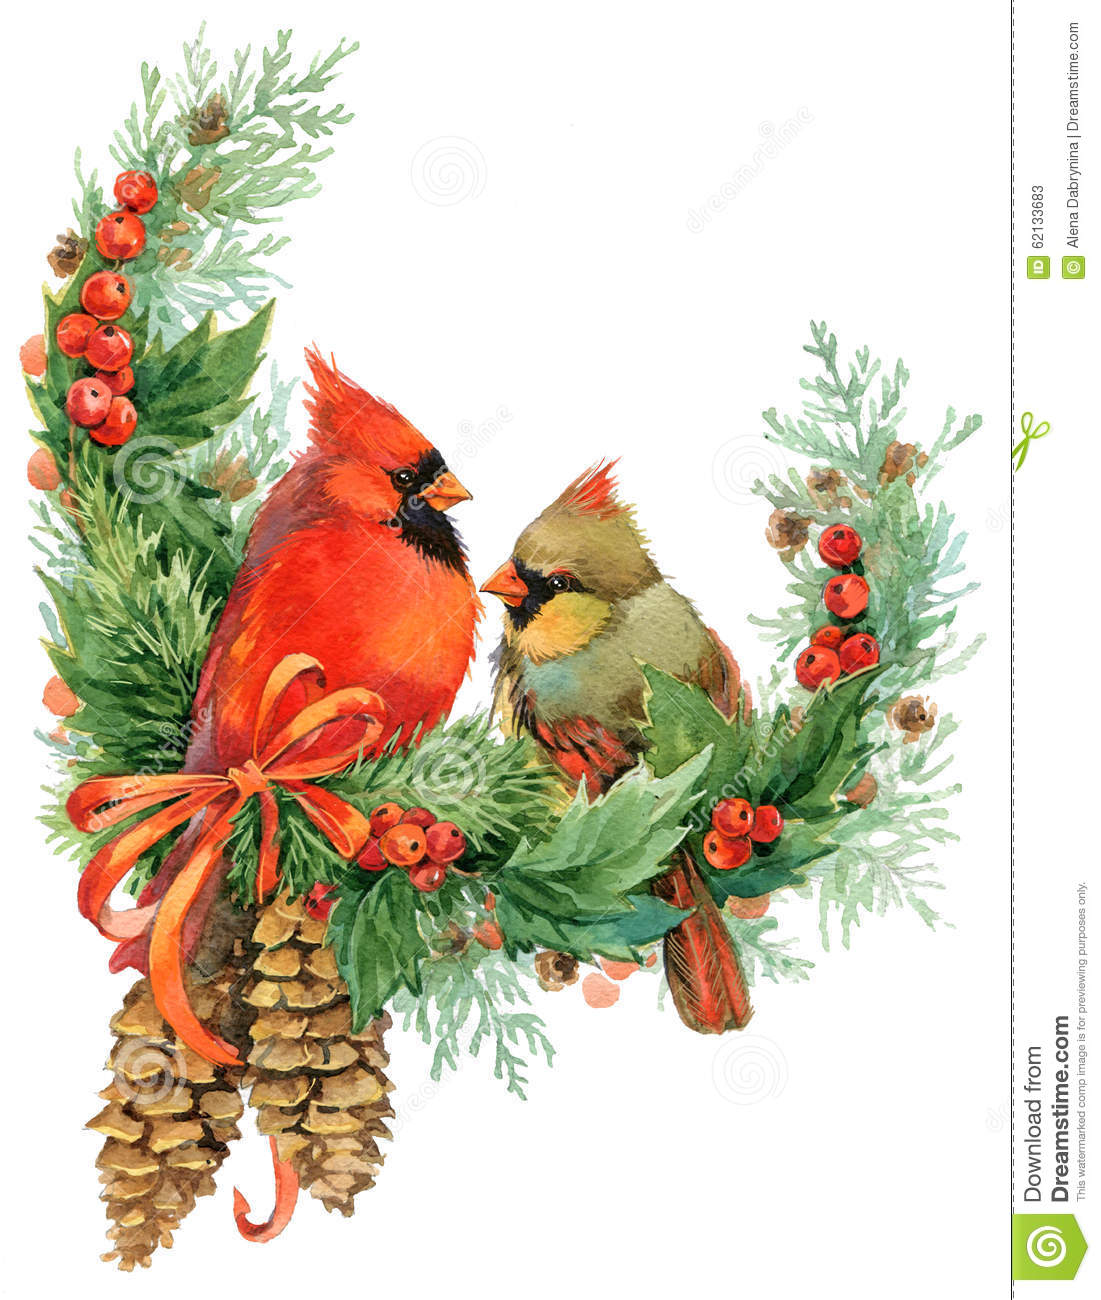 Birds On Christmas Tree: Christmas Wreath And Cute Birds. Watercolor Illustration